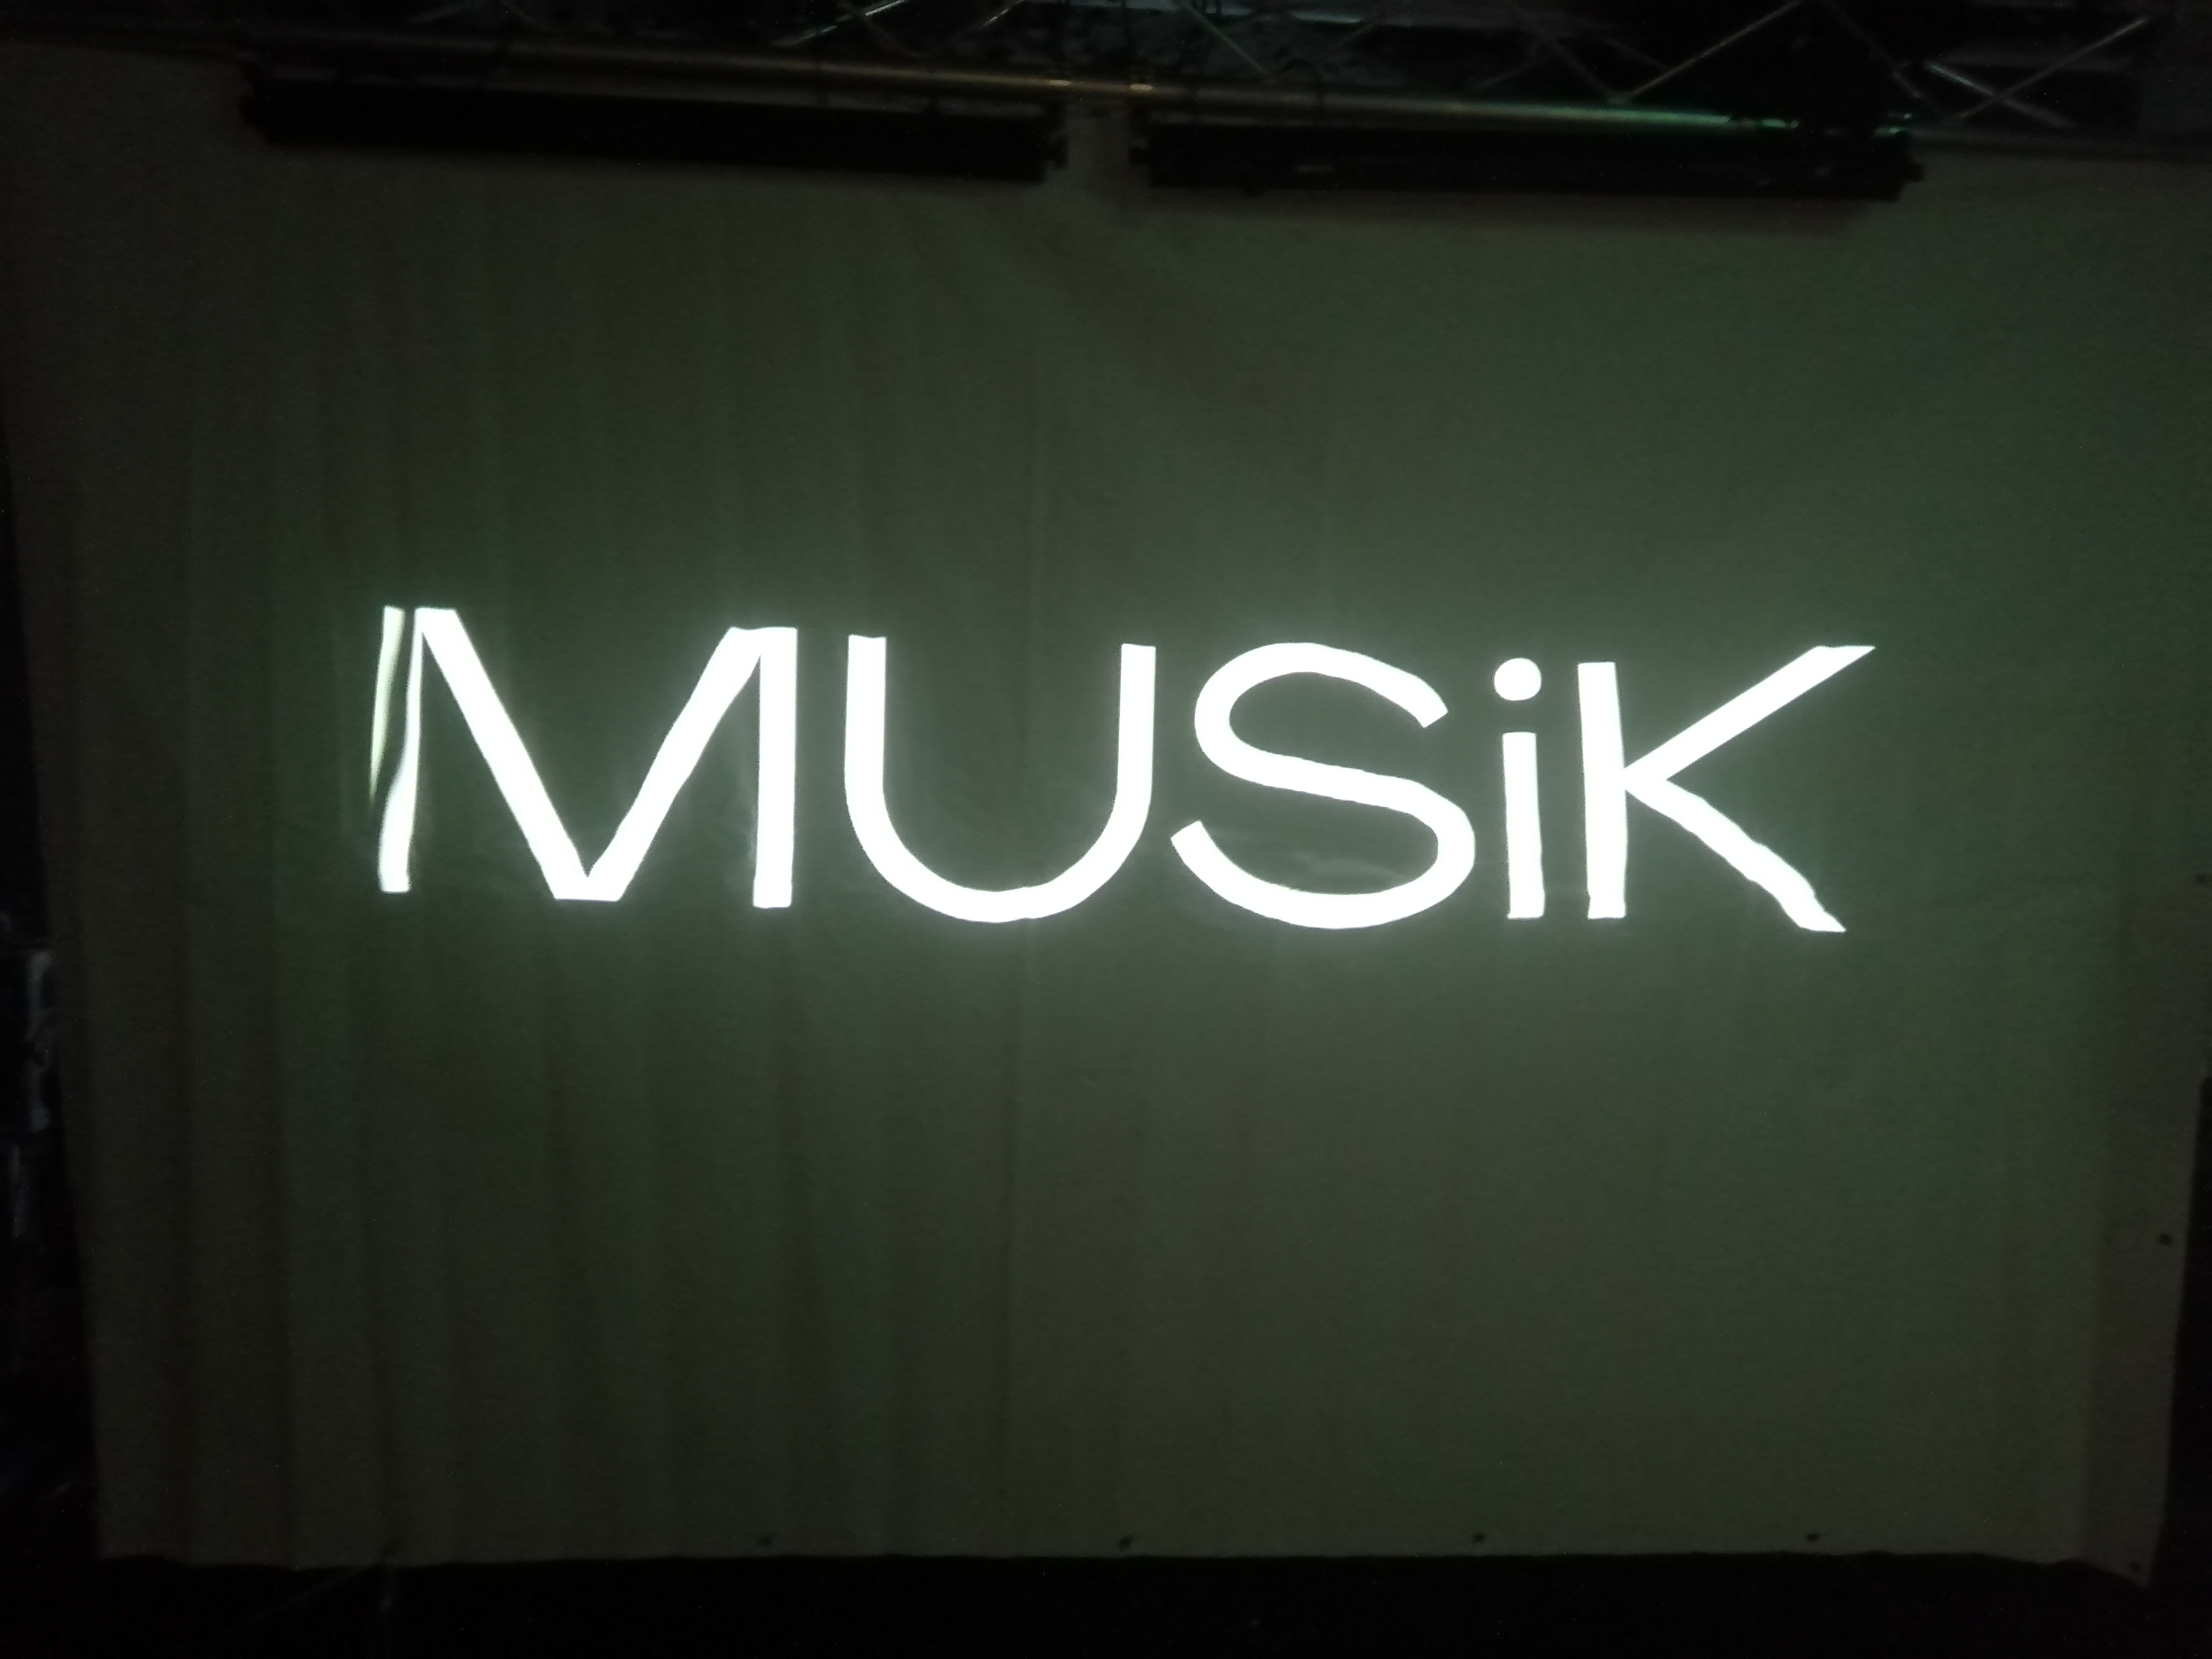 The future of 'Musik' in Huddersfield